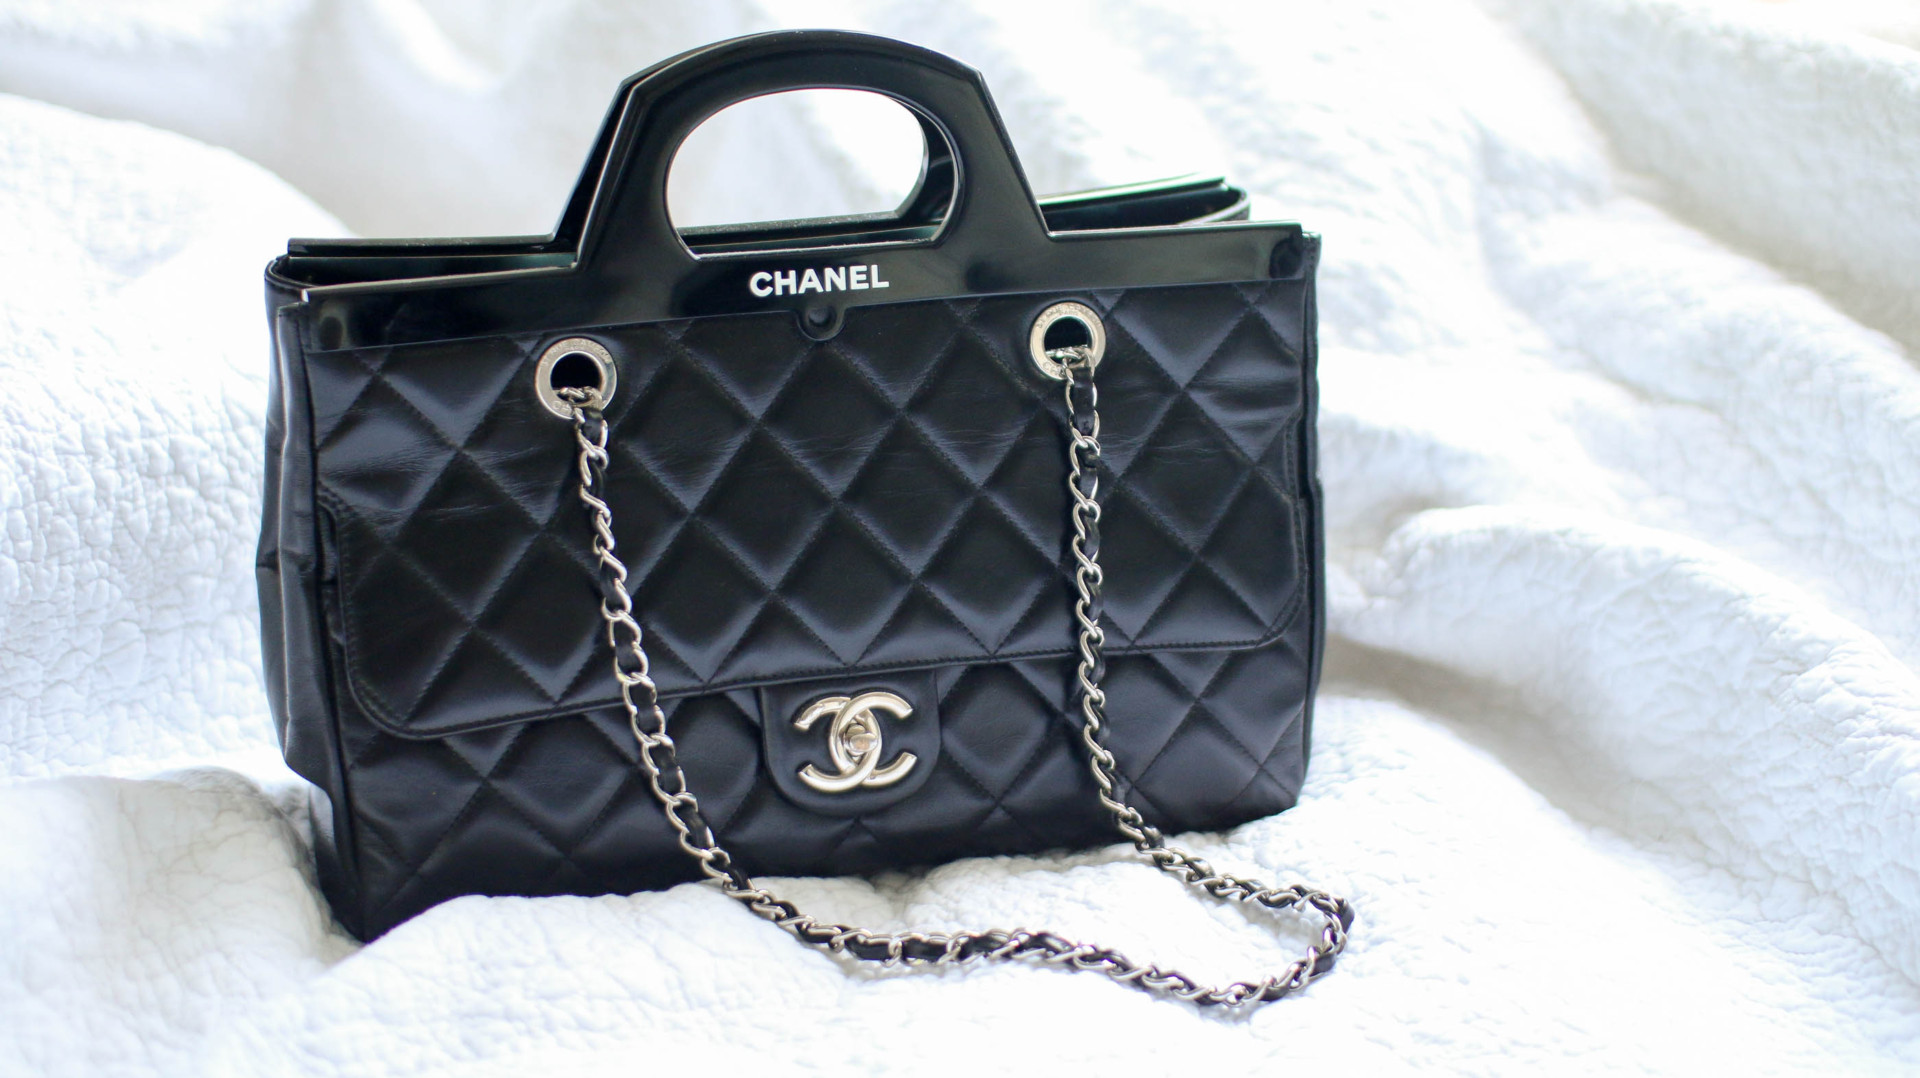 62843cafc4ec Chanel CC Delivery Tote Small Black with Silver Hardware (Limited Edition)